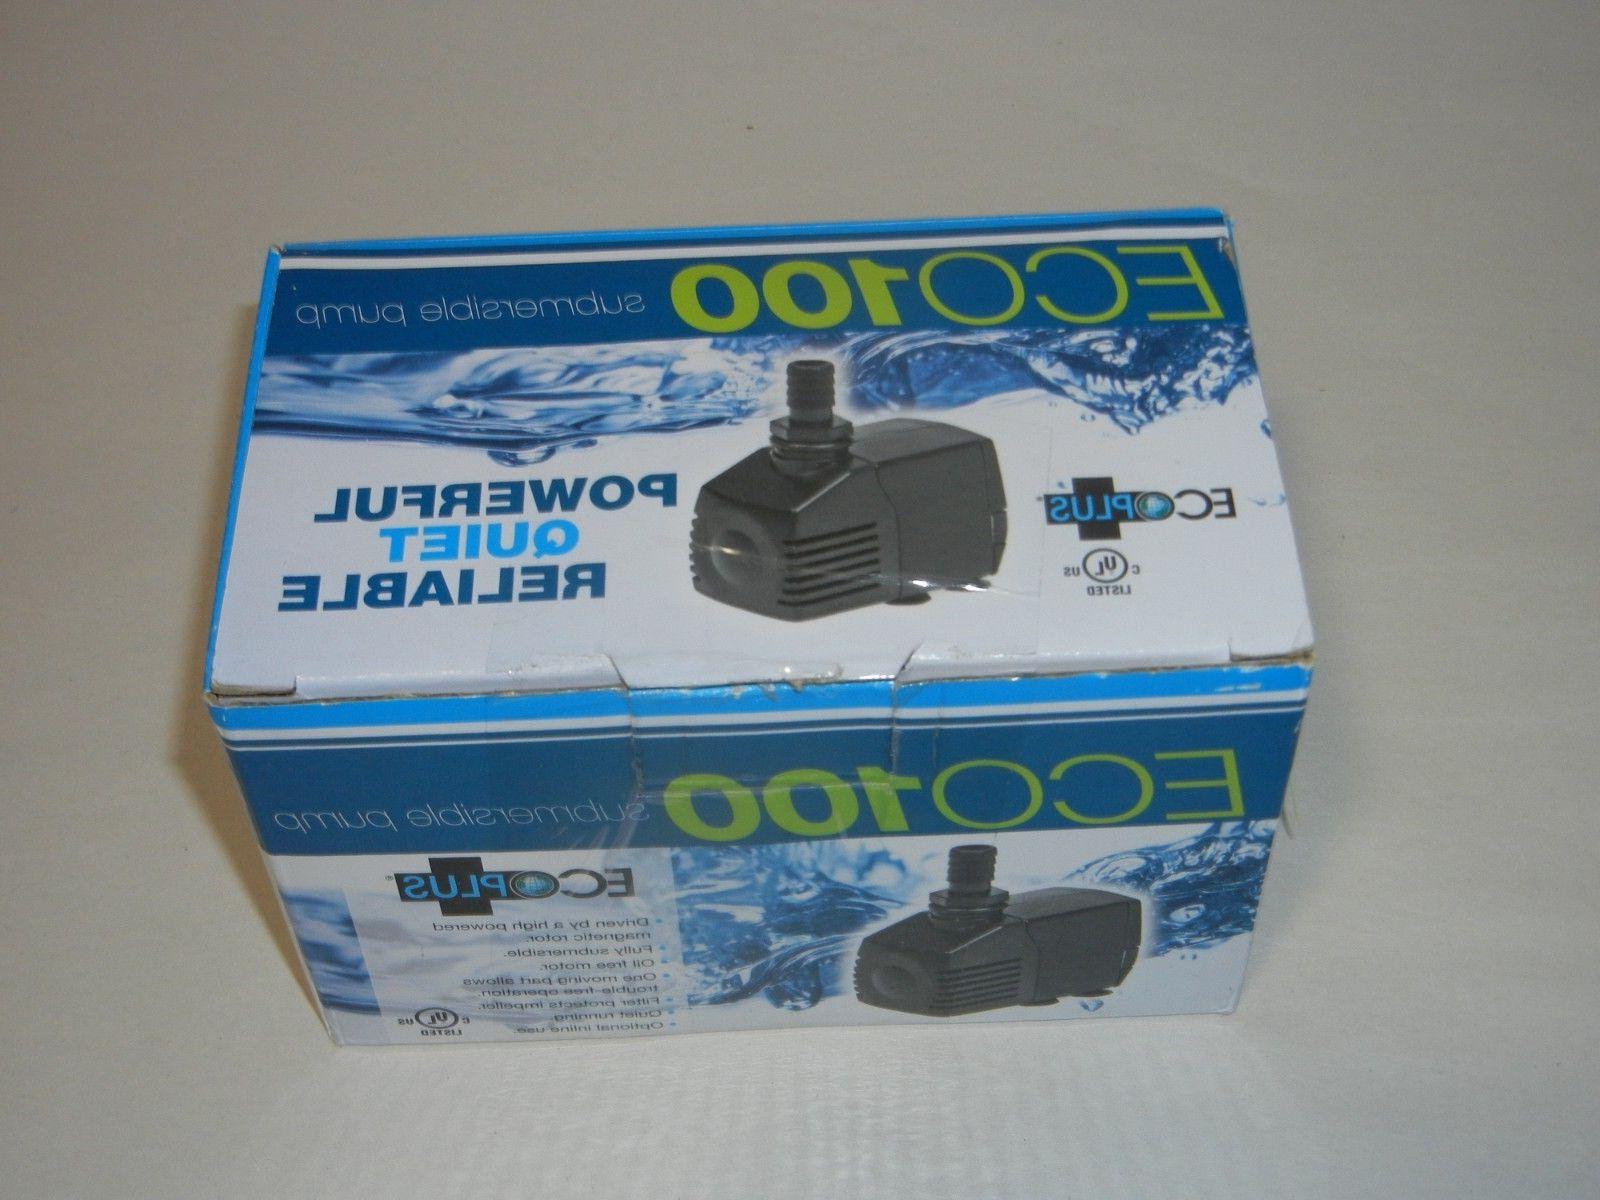 eco 100 submersible pump 100 gph 728492